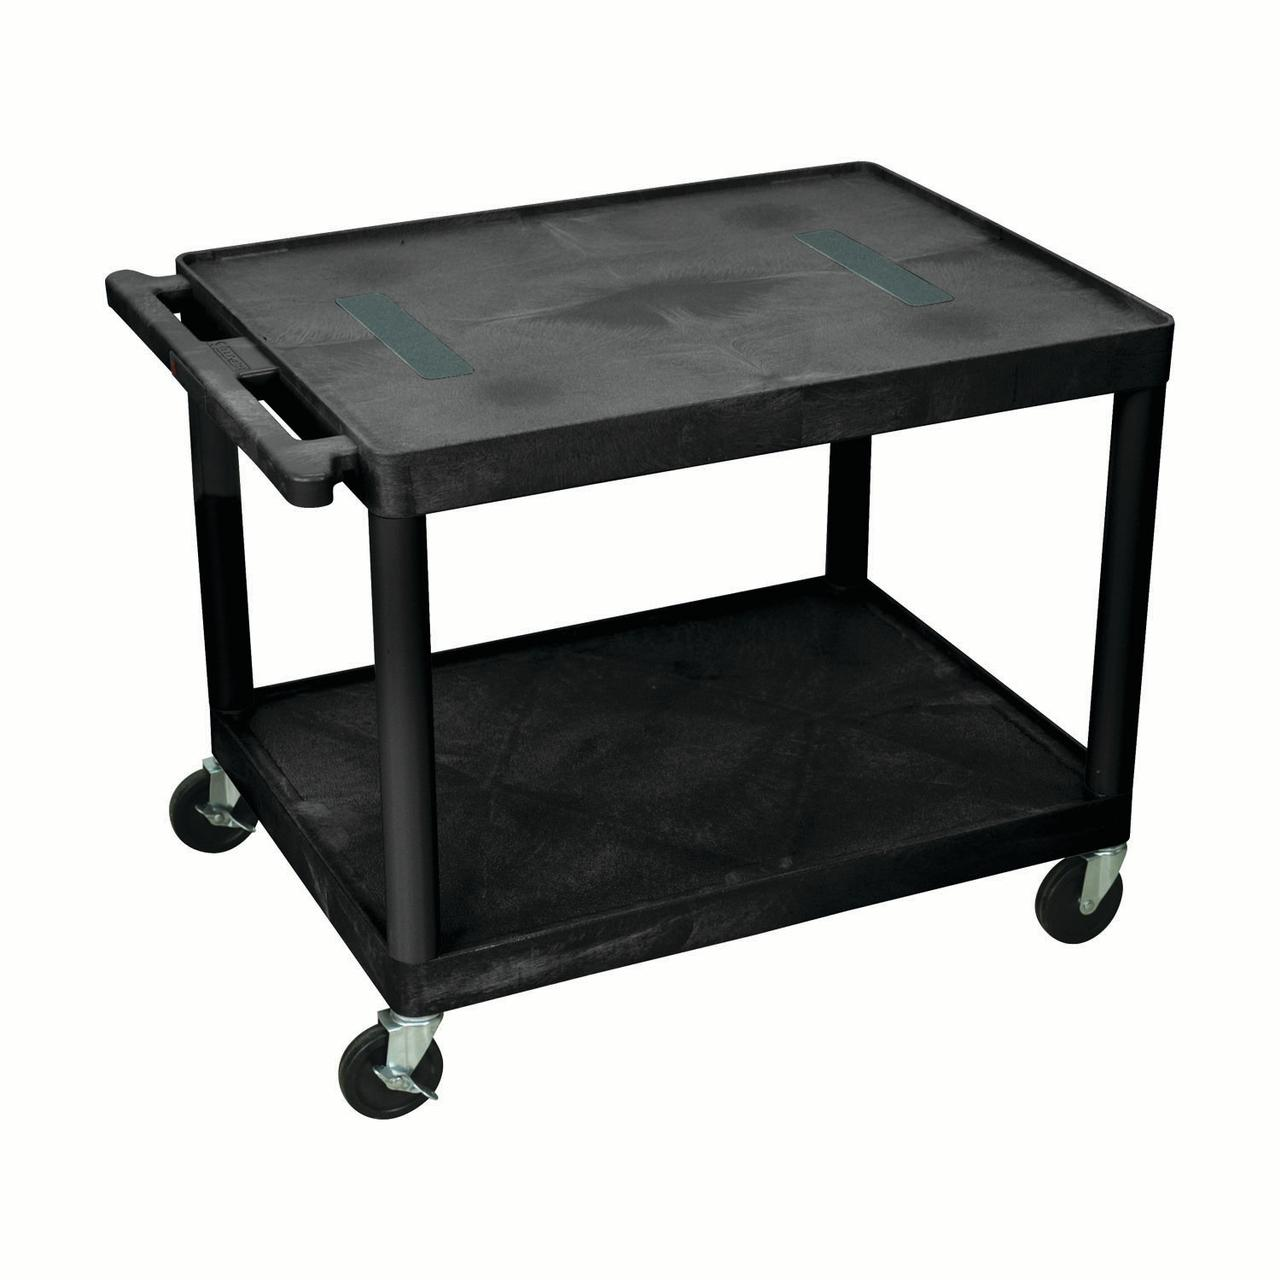 Offex Endura A/V Cart 2 Shelves Black